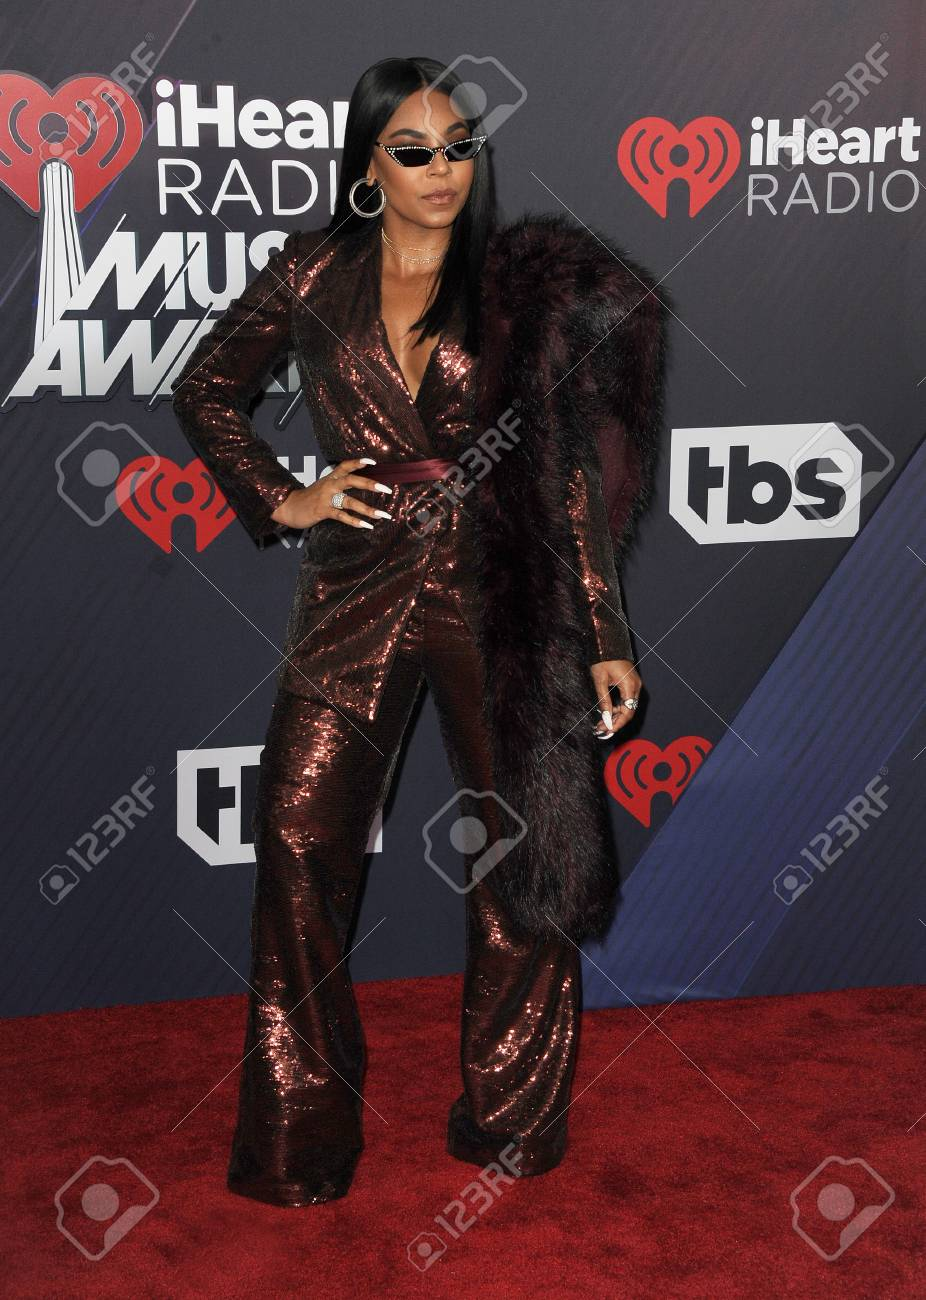 Ashanti at the 2018 iHeartRadio Music Awards held at the Forum